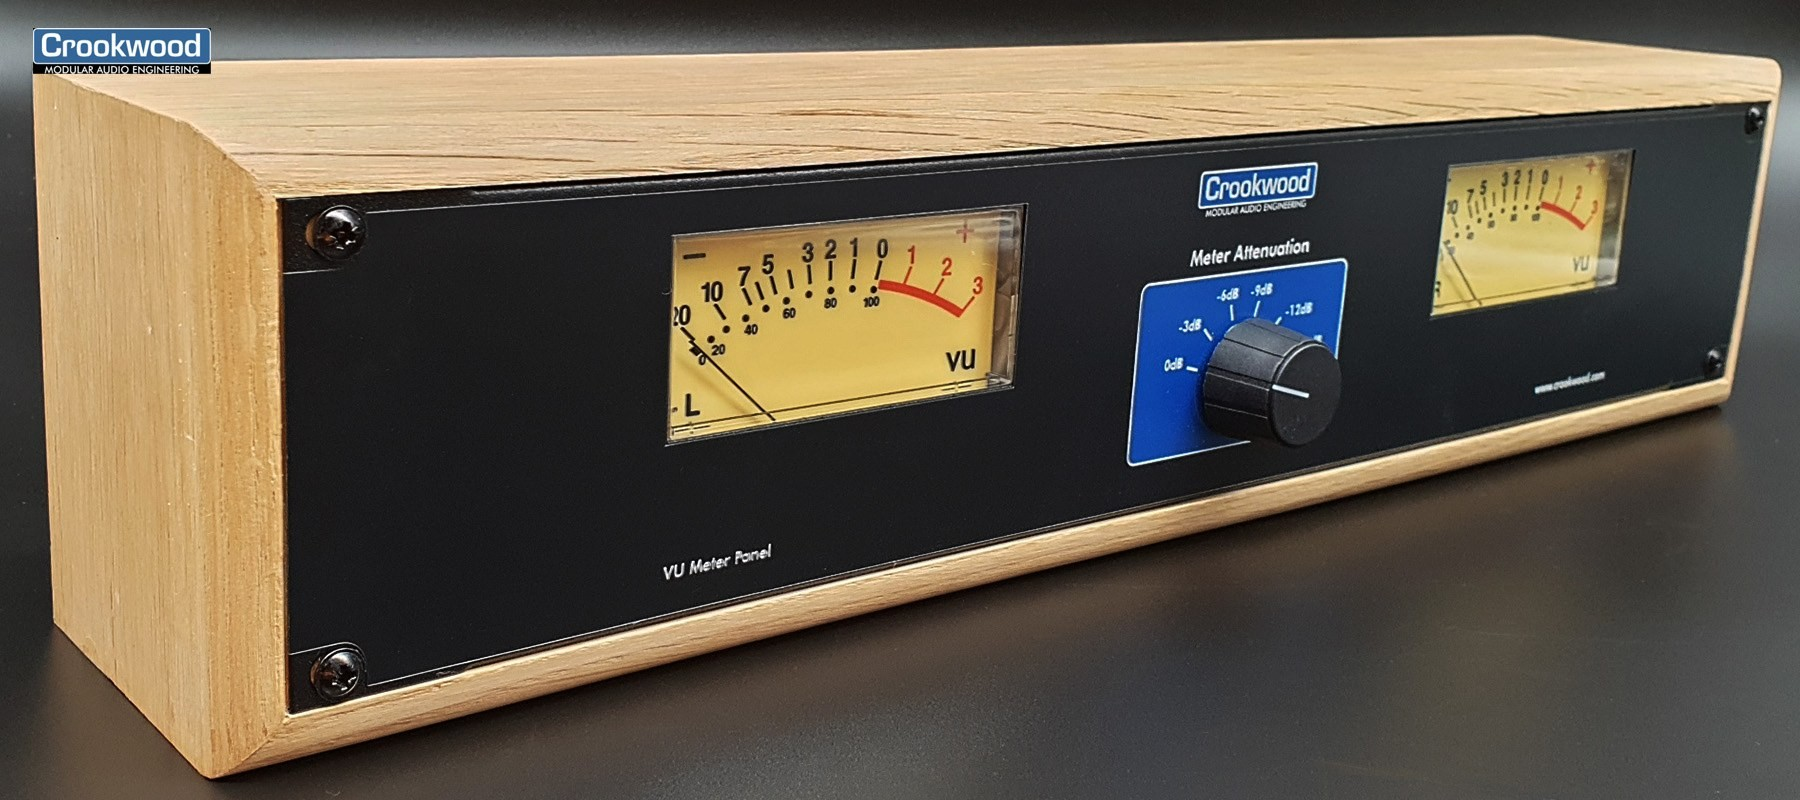 Crookwwod Stereo Vu meter with wood case